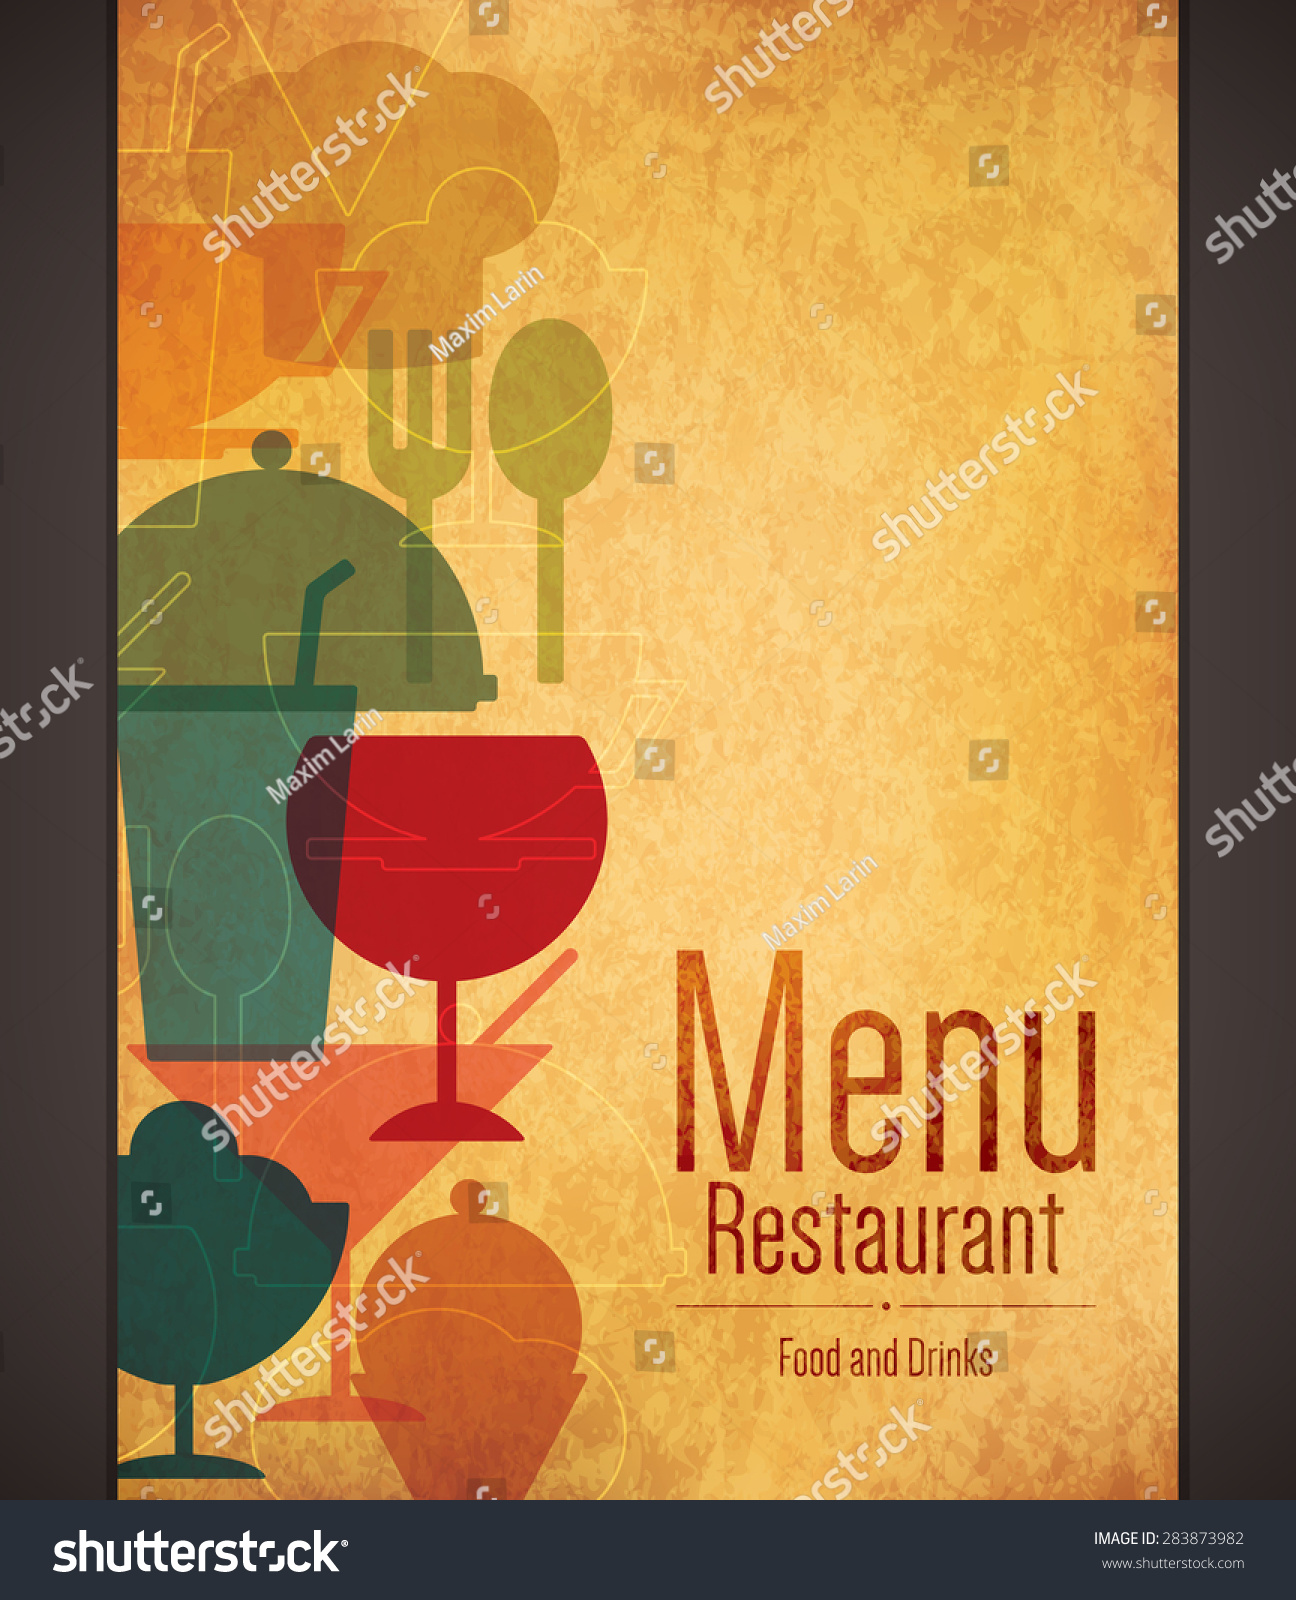 restaurant menu design vector brochure template stock vector vector brochure template for cafe coffee house restaurant bar